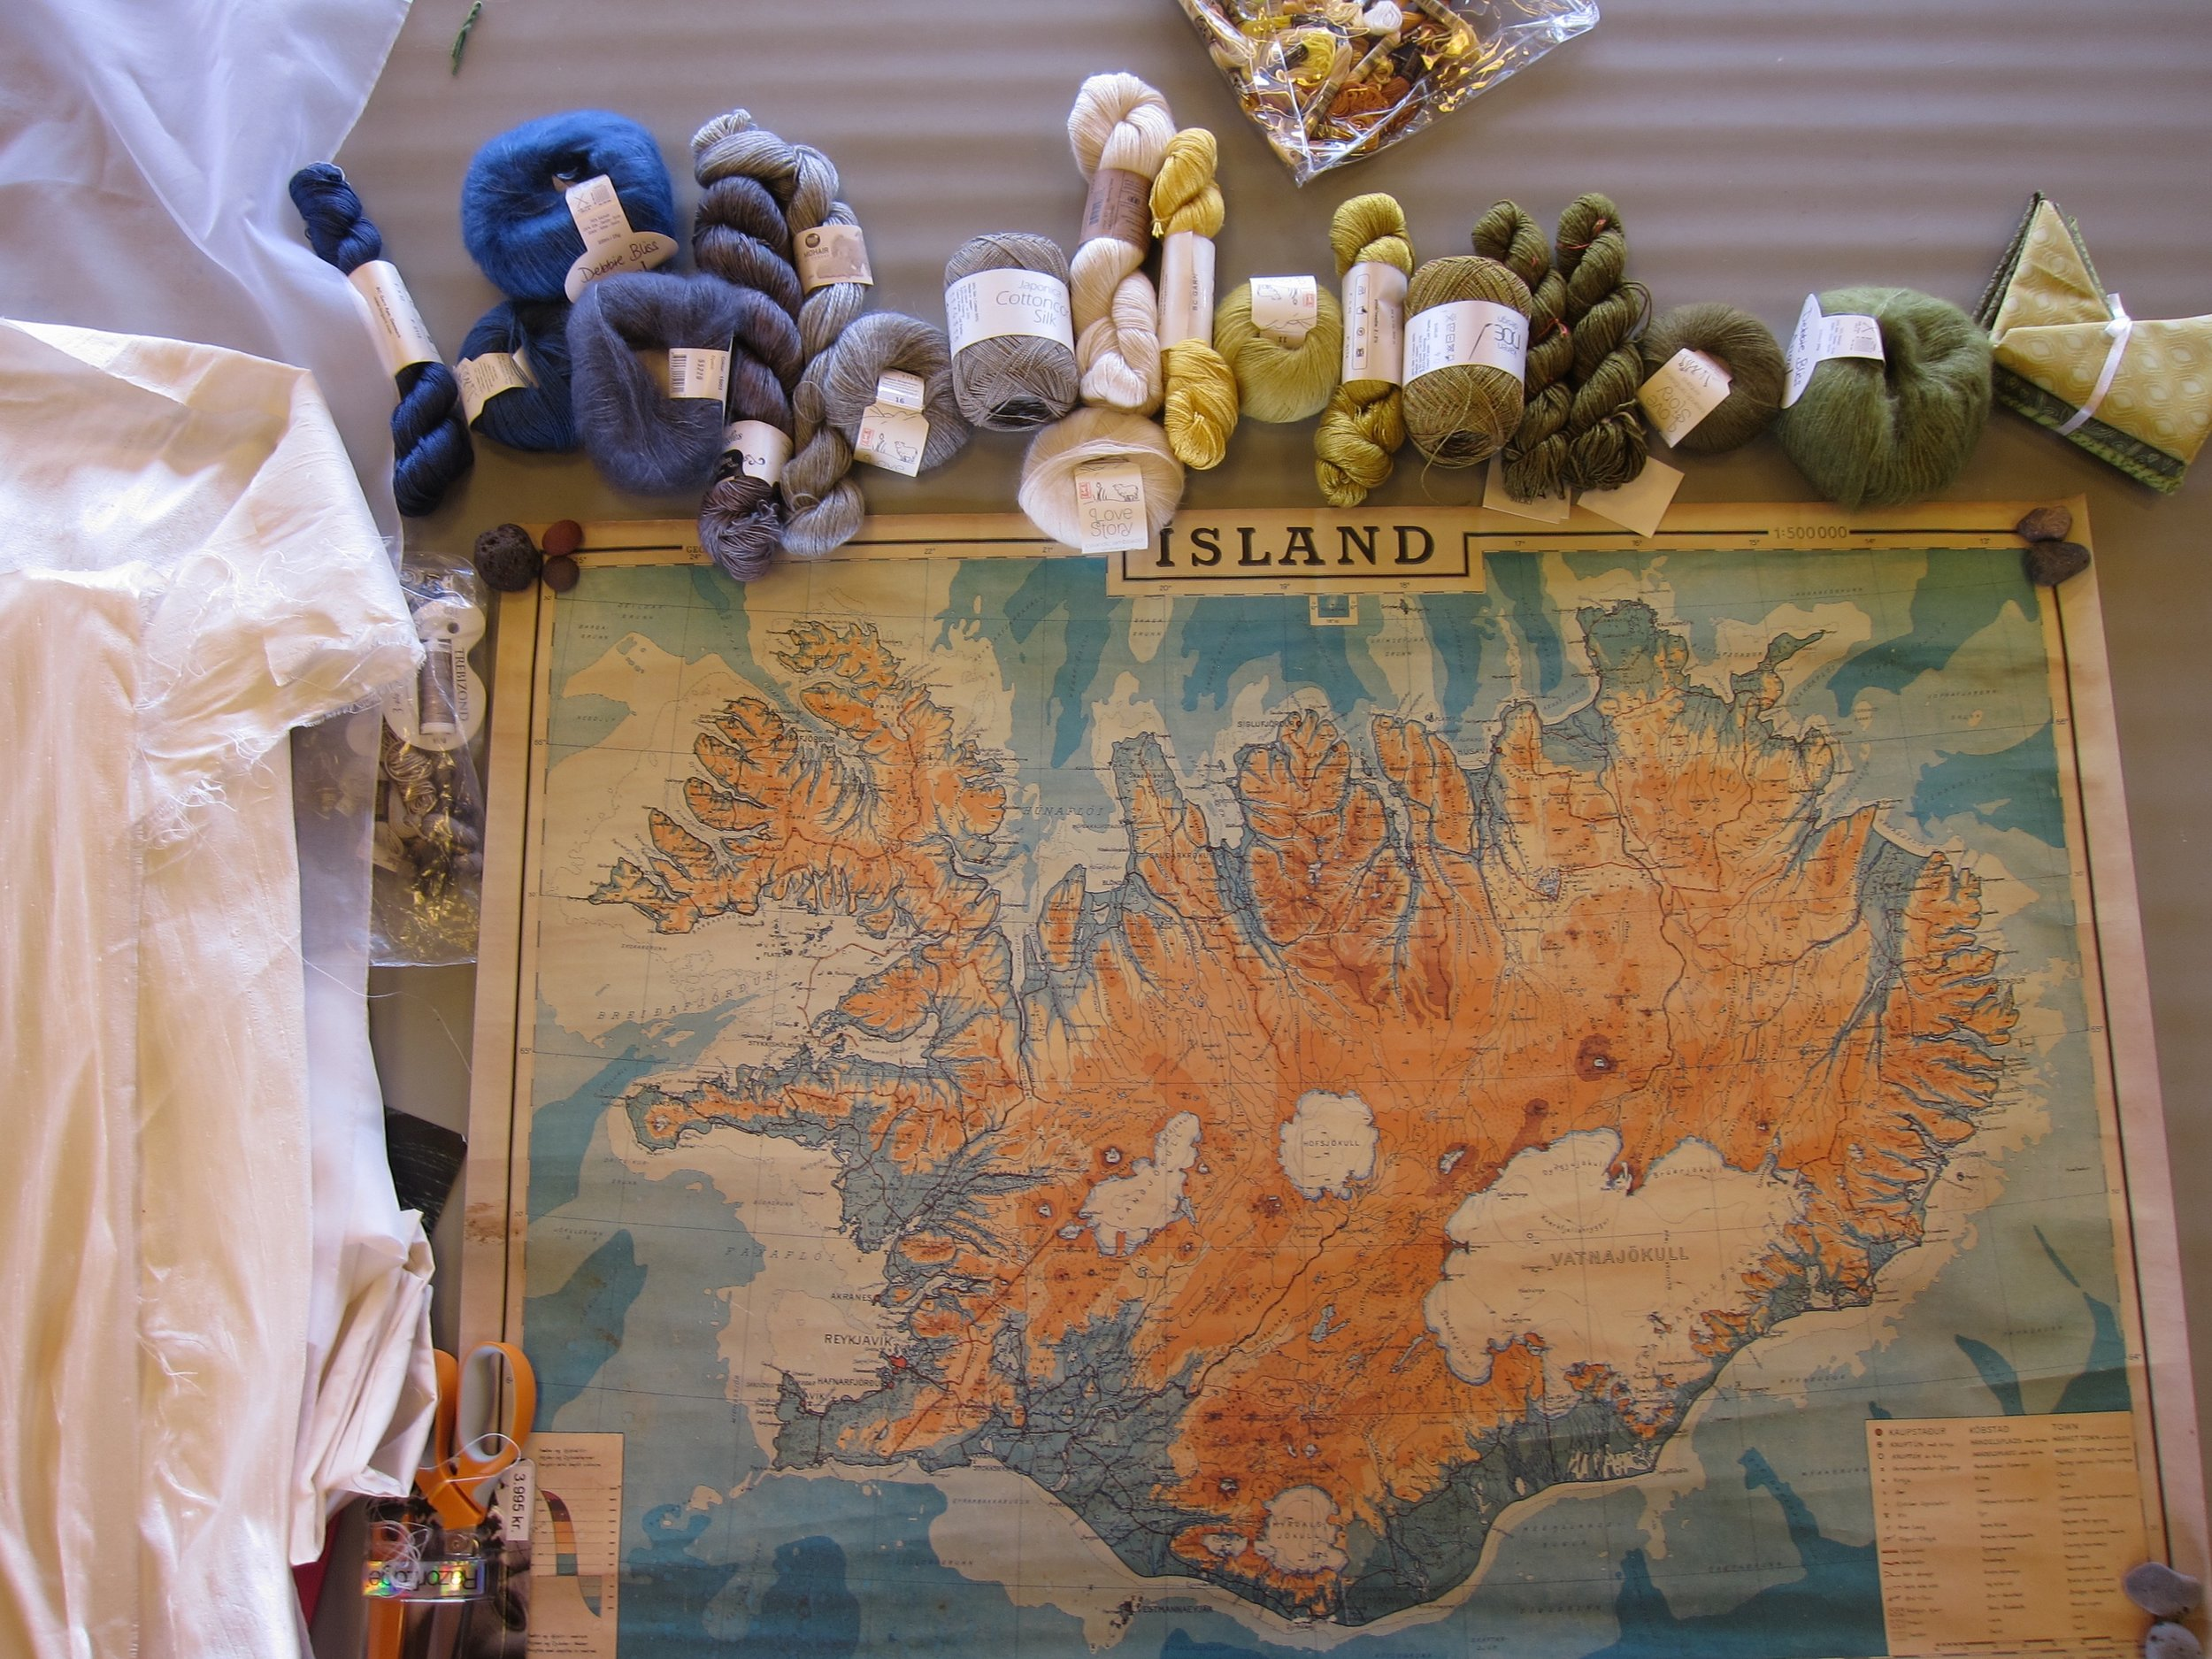 On the left, silks brought from home to be the ground of my map-in-the-making, a modern reprint of a 1963 map of Iceland as starting point, plus a trove of Reykjavík-purchased Icelandic wools and silk yarns for stitching. In this globalized era, it seemed fitting that some yarn was an in-comer, as was I.